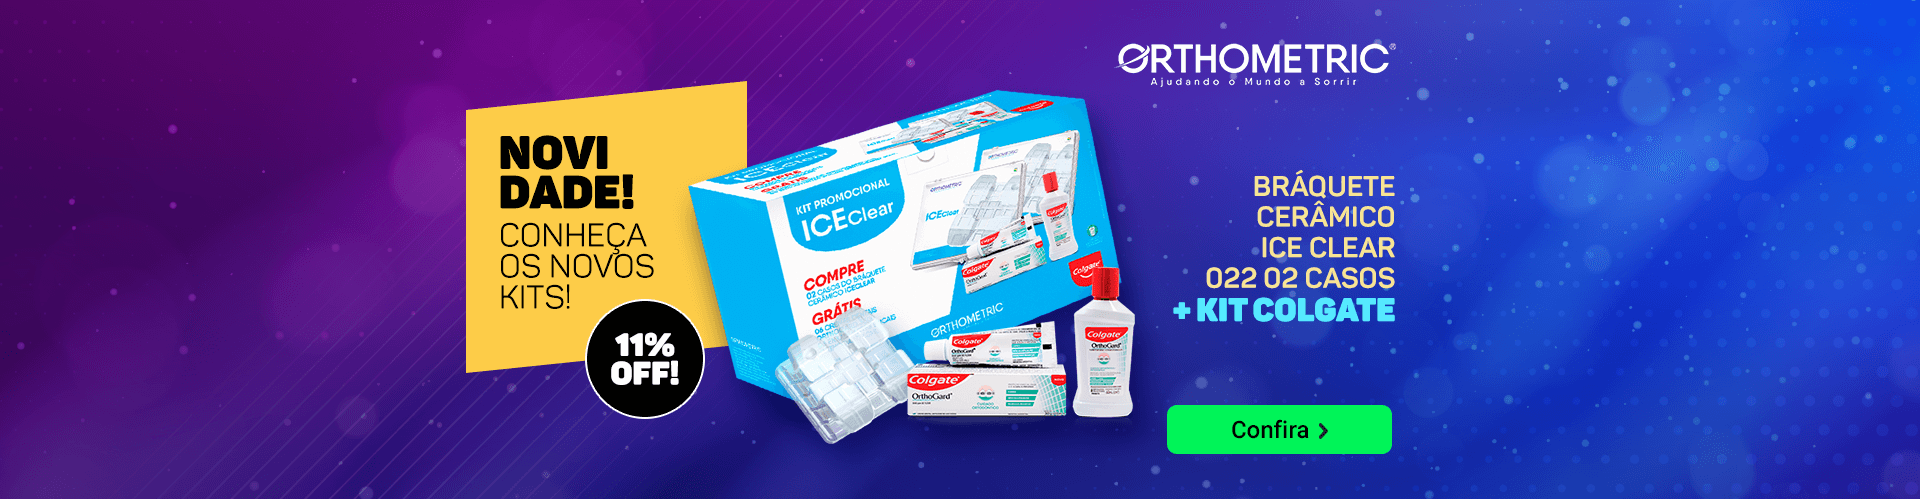 Kit Bráquete Ice Clear Orthometric com 11% OFF | Dental Cremer